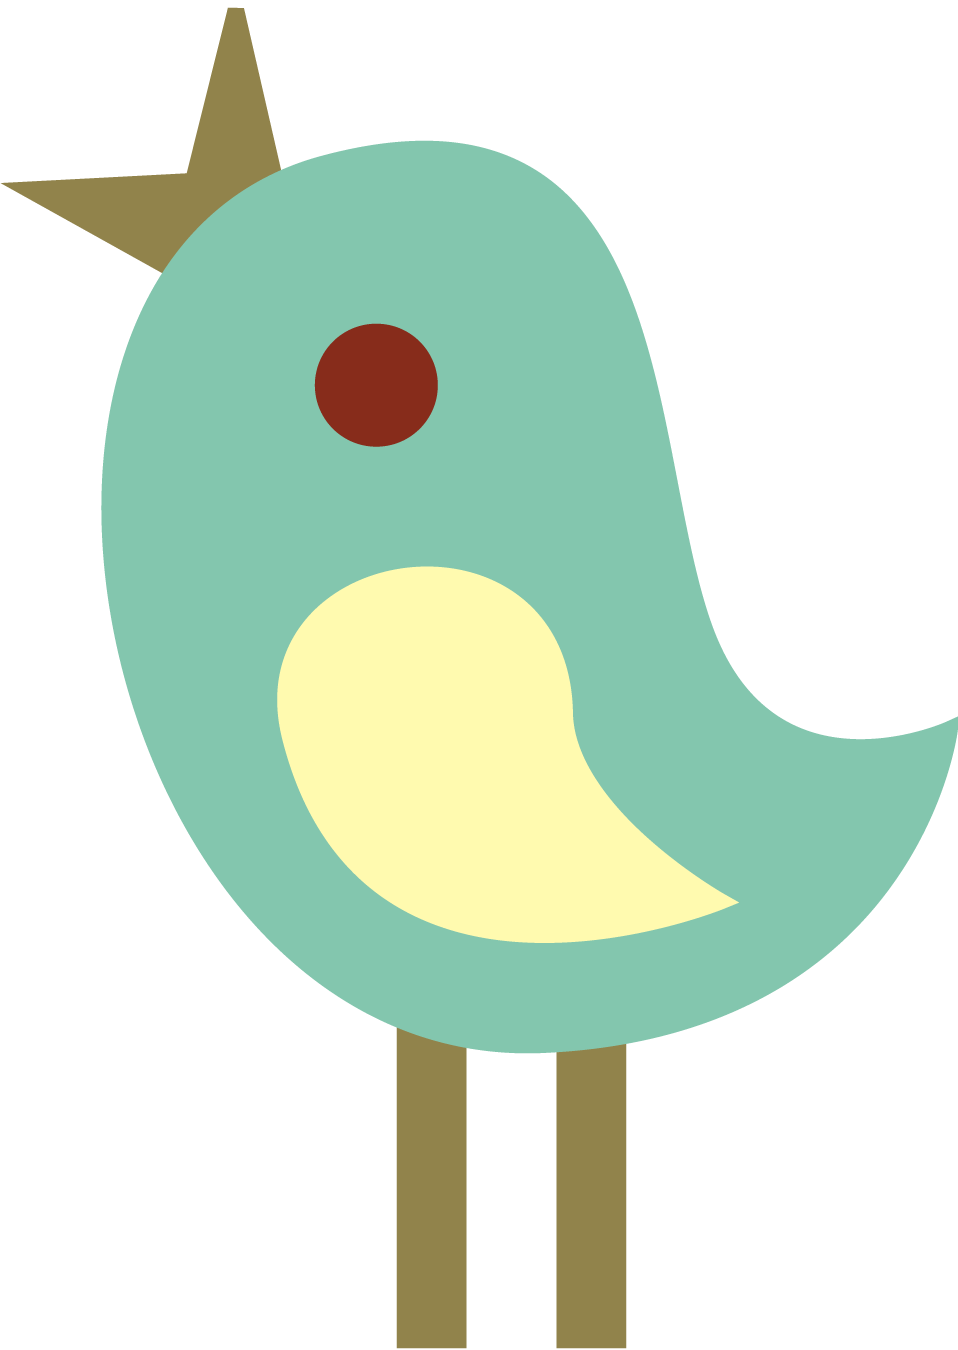 Cute Birds Cliparts Great For Any Projec-Cute Birds Cliparts Great For Any Projects Blog Paper Craft And-13